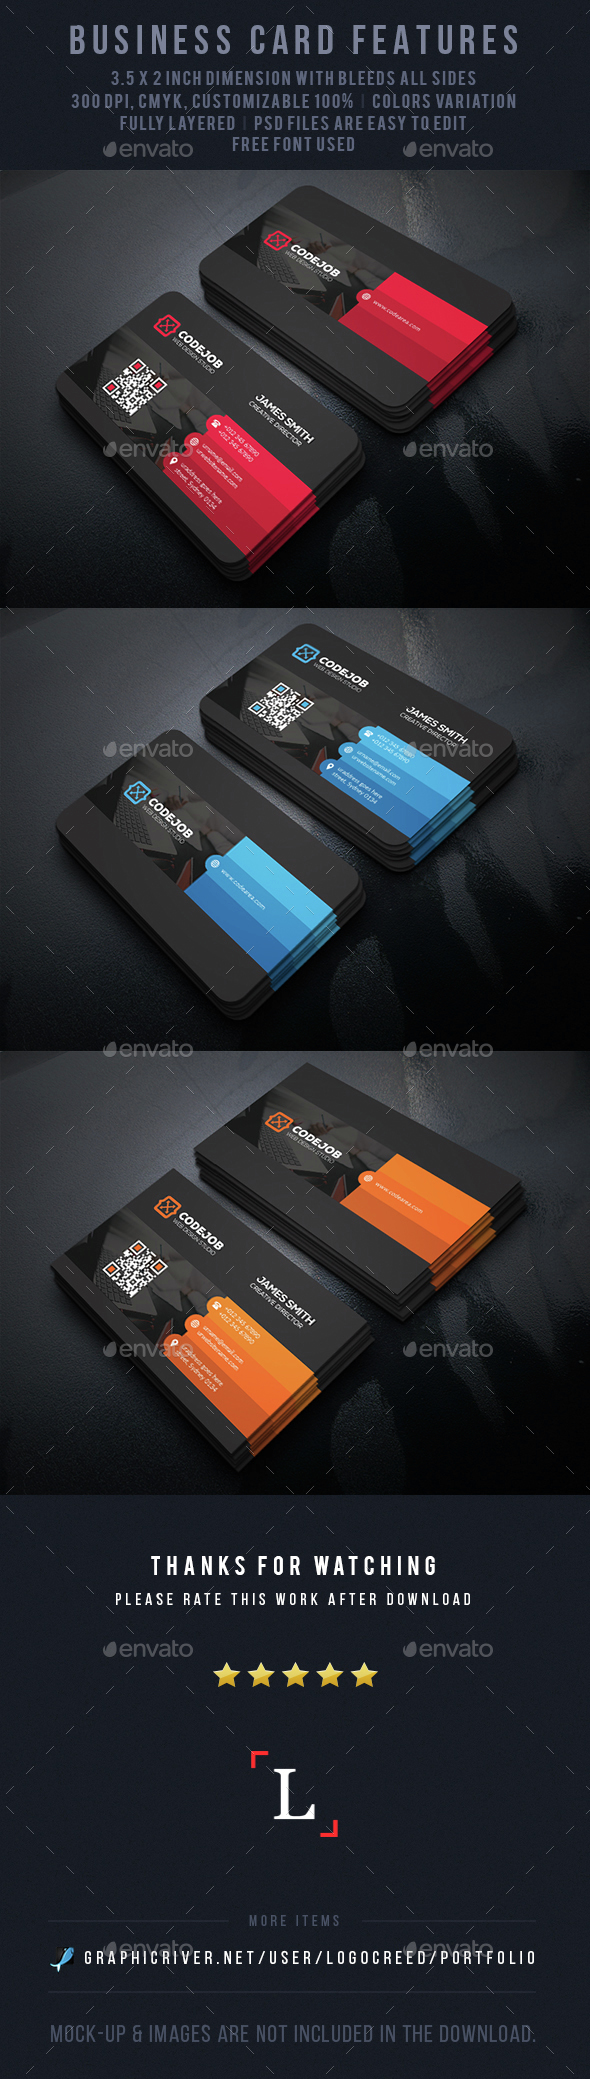 Color Shade Business Cards - Business Cards Print Templates